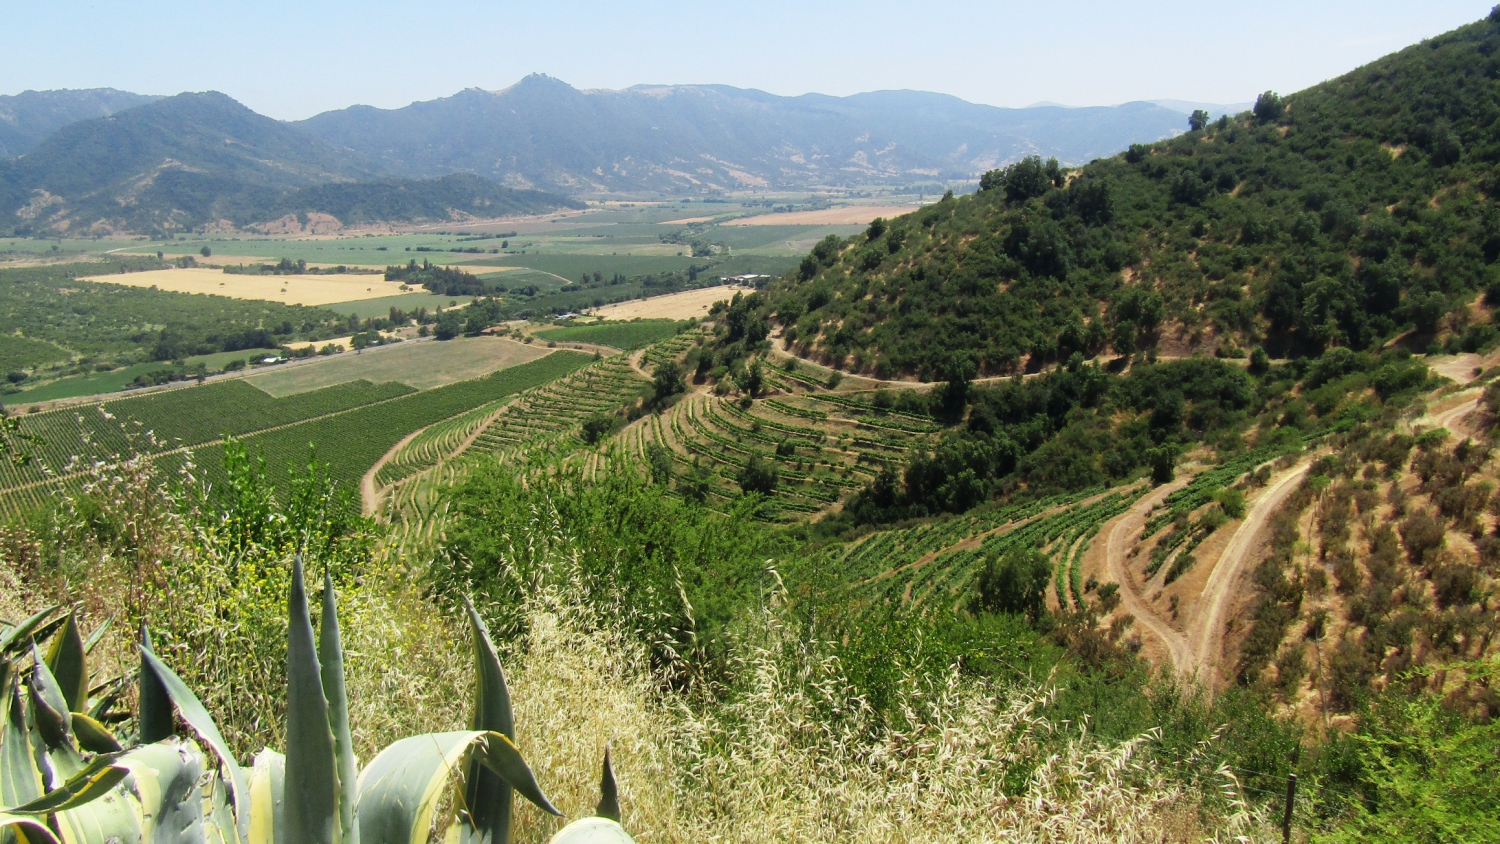 Things to do and see in Colchagua Valley